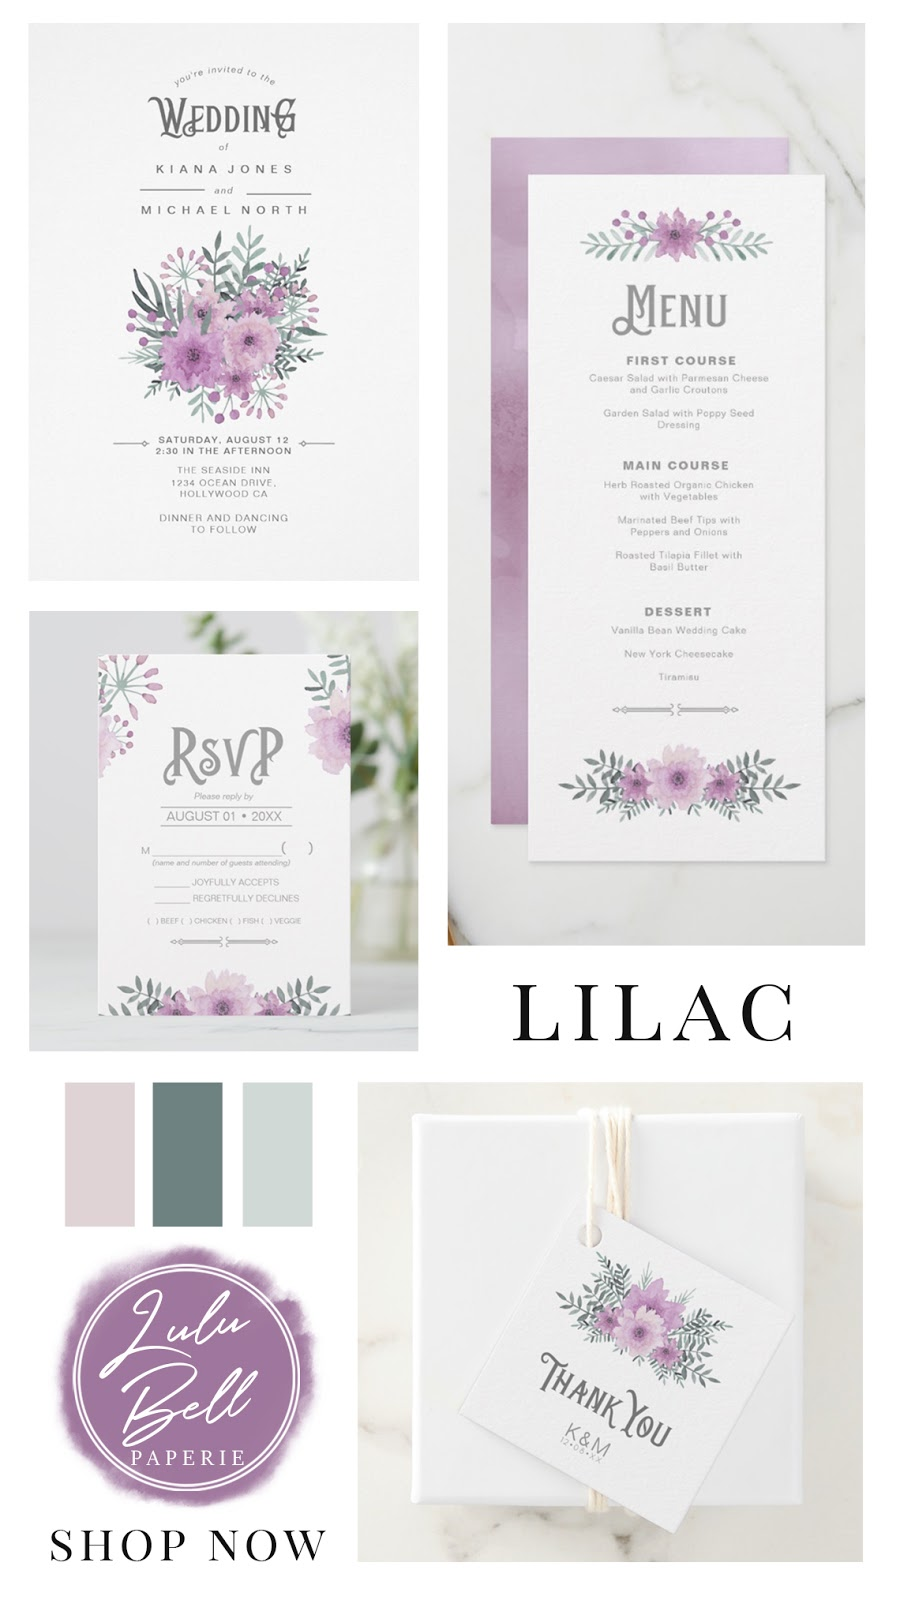 Lilac floral bouquet wedding invitation suite with pretty watercolor flowers. The collection includes rsvp cards, favor tags, dinner menus, and invites. In a lilac purple, blush pink, and mint green color palette.